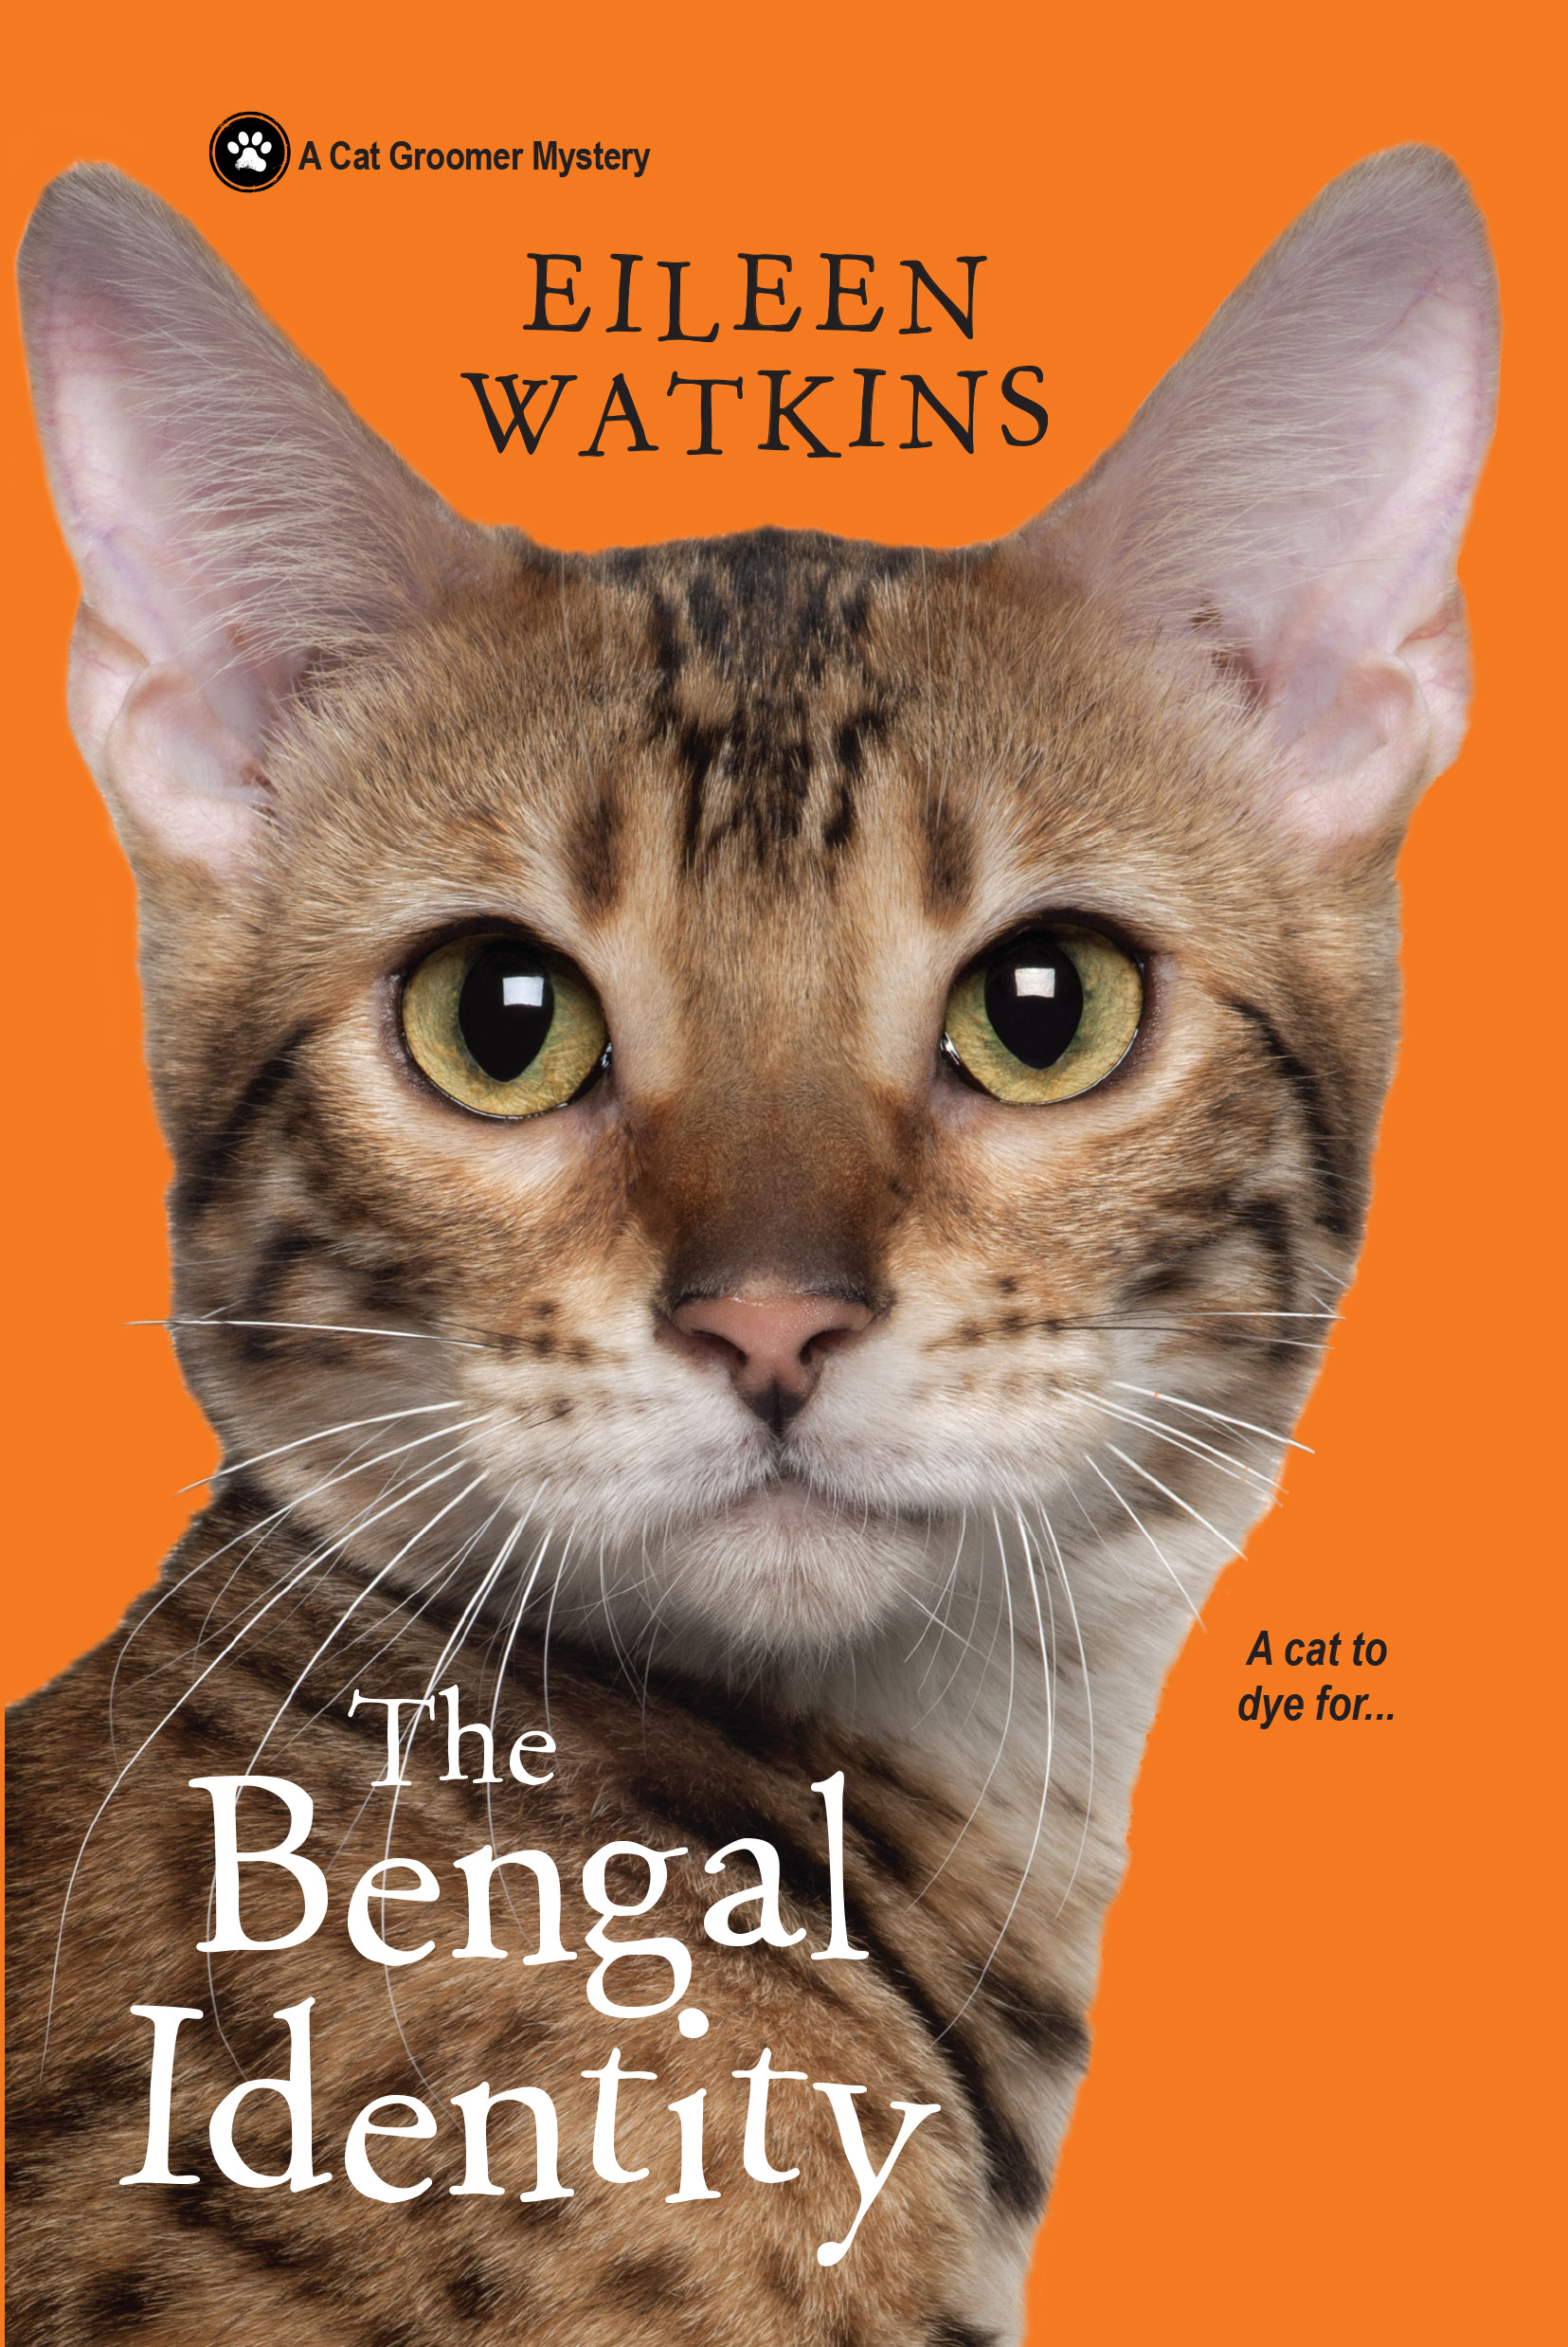 The Bengal identity - bibliophile review